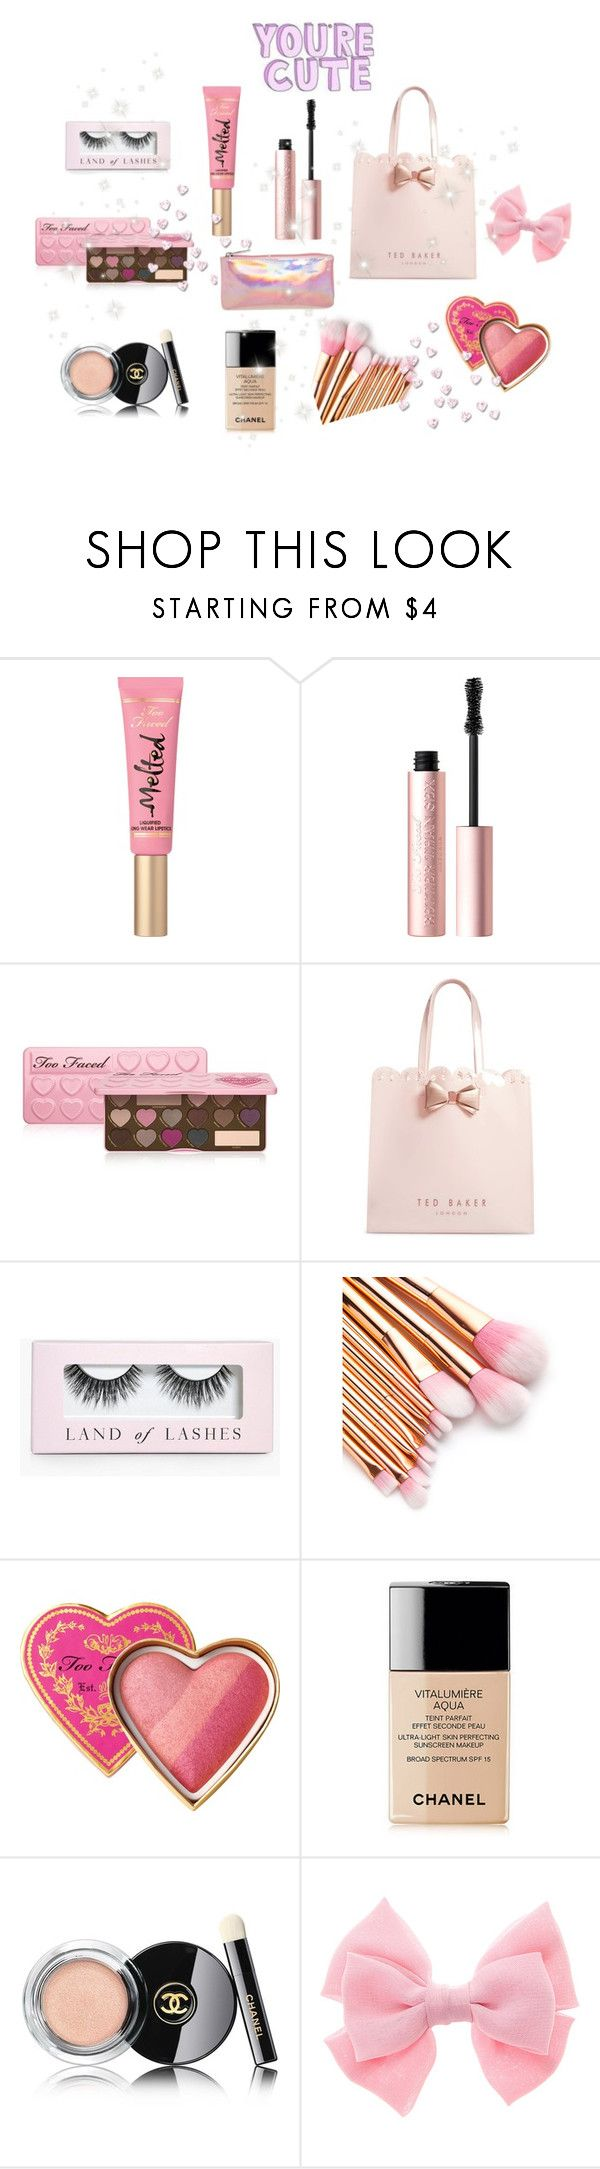 """""""♡ What's in my Makeup bag ♡"""" by girlymoonlightbae ❤ liked on Polyvore featuring beauty, Too Faced Cosmetics, Ted Baker, Boohoo, Chanel and Bari Lynn"""